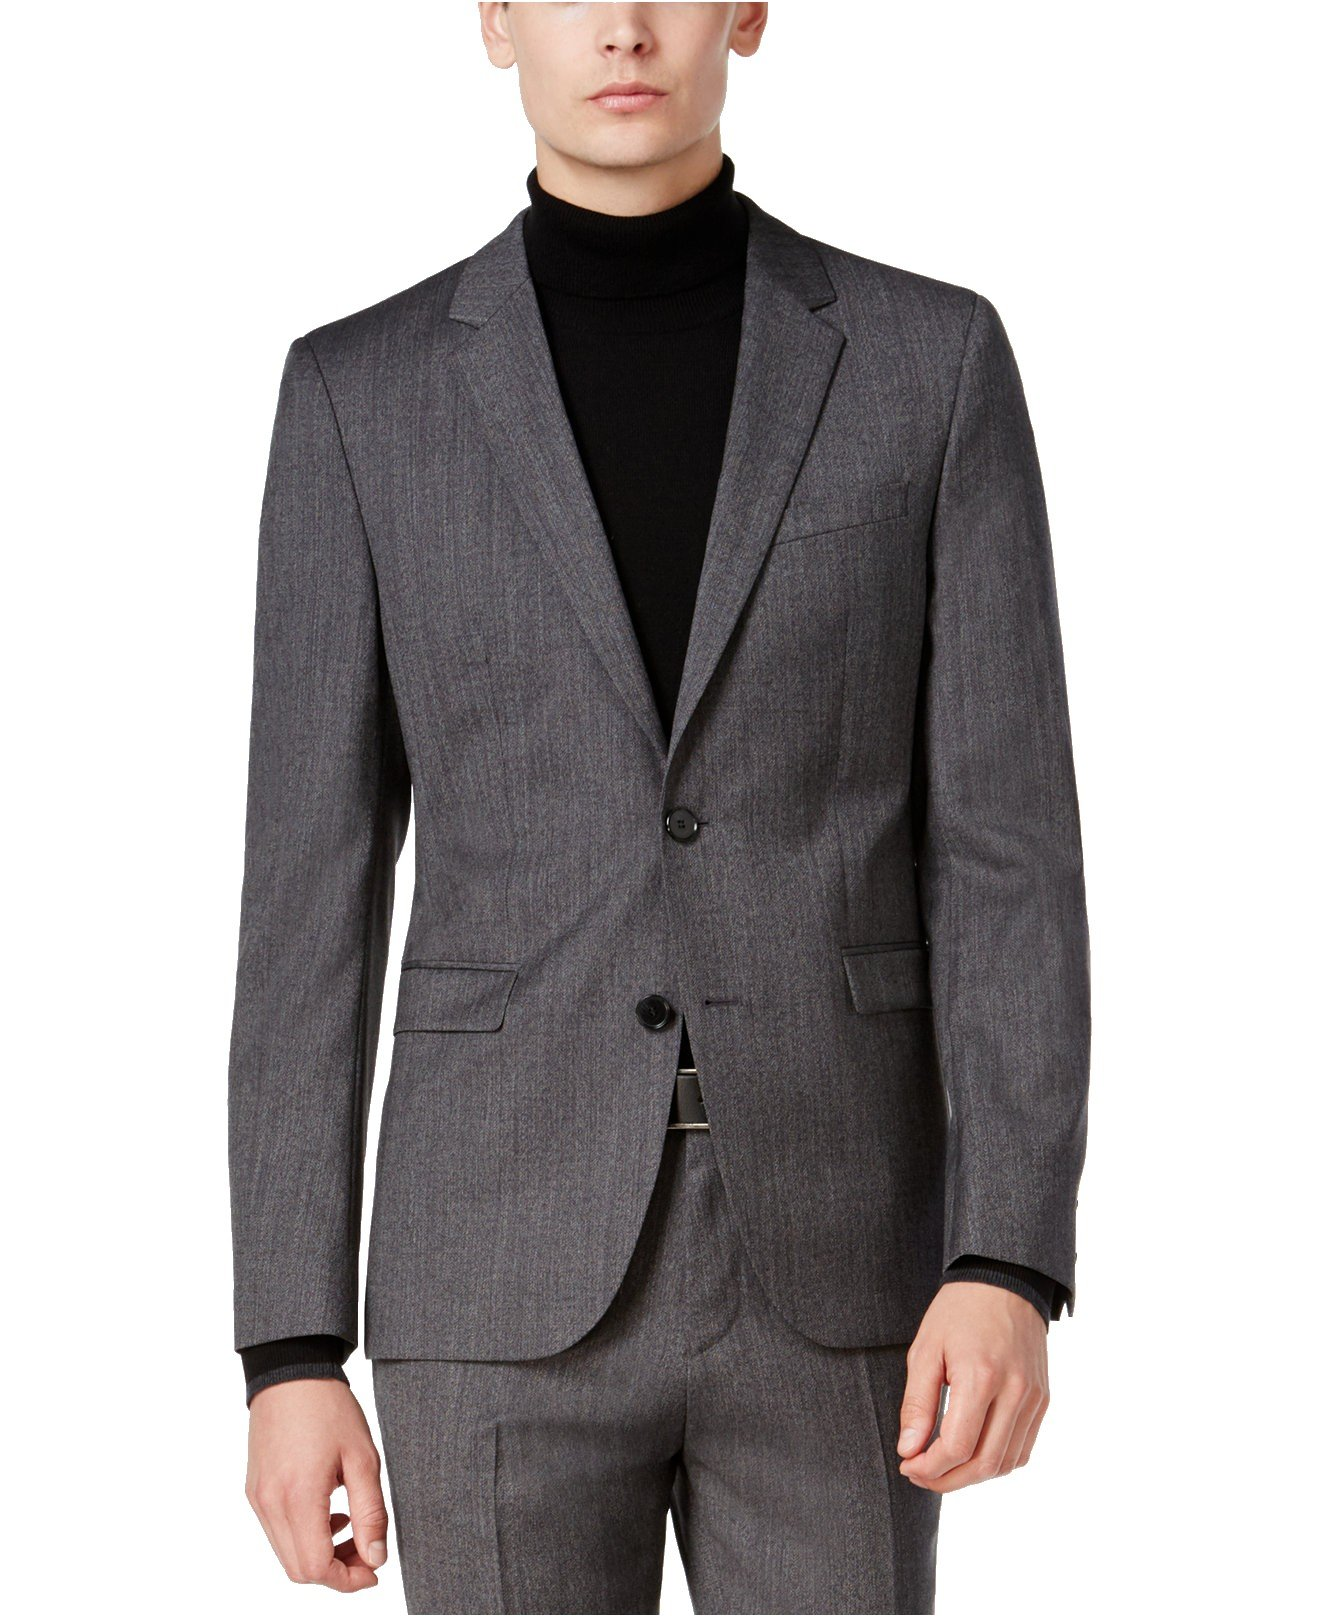 Hugo Boss Astian/Hets Extra Slim Fit 2 Piece Men's 100% Virgin Wool Suit Melange Herringbone 50320624 033 by HUGO (46 Regular USA Jacket / 40 Waist Pants) by HUGO BOSS (Image #2)